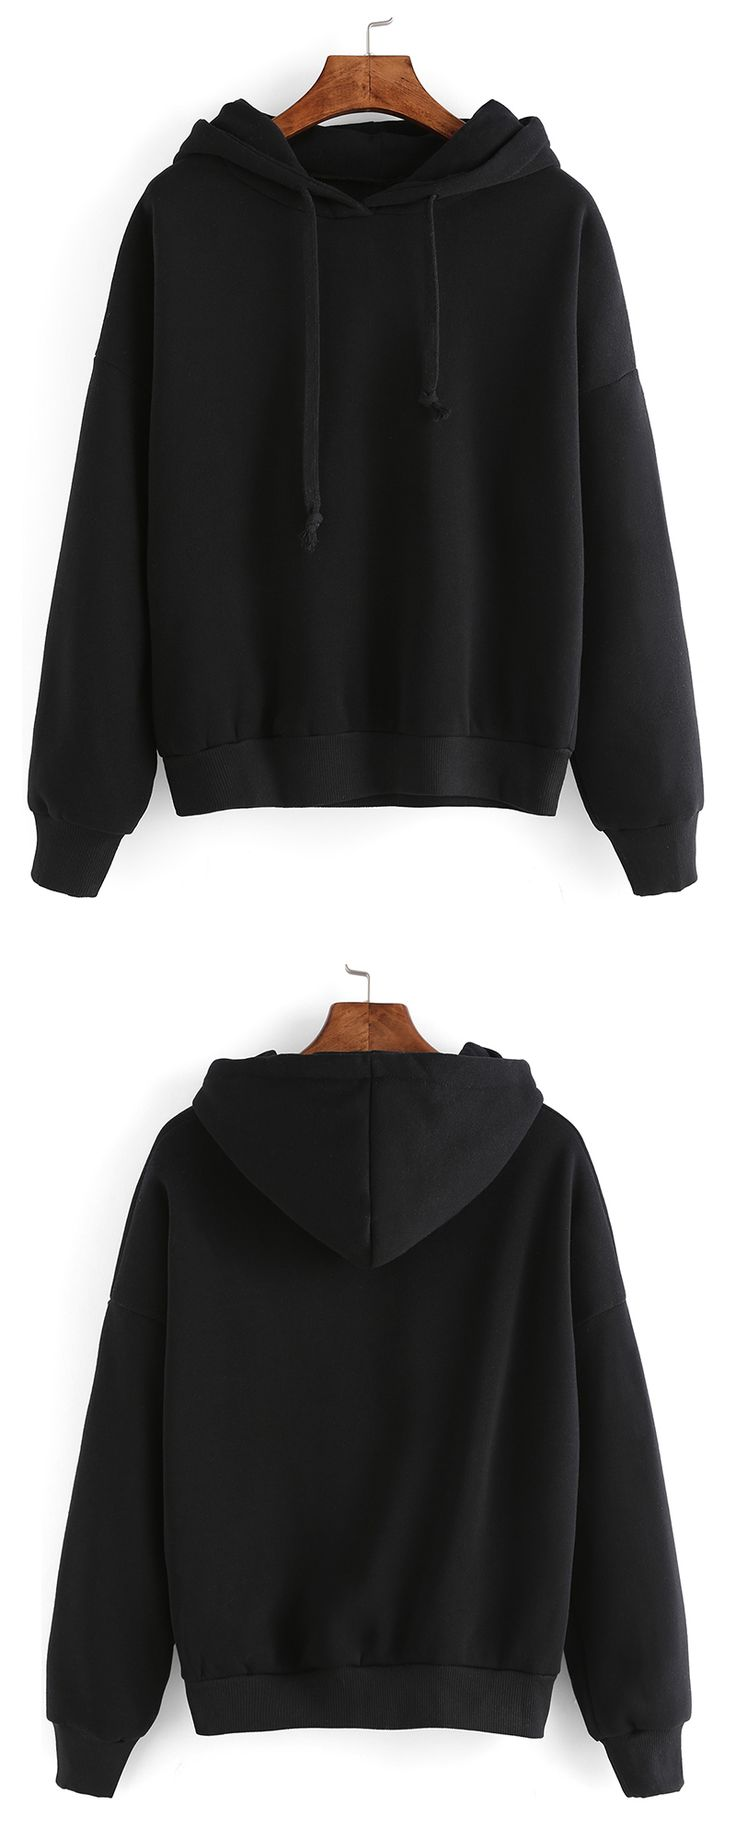 Black Hooded Long Sleeve Crop Sweatshirt - shein.com cute styles, fashion styles